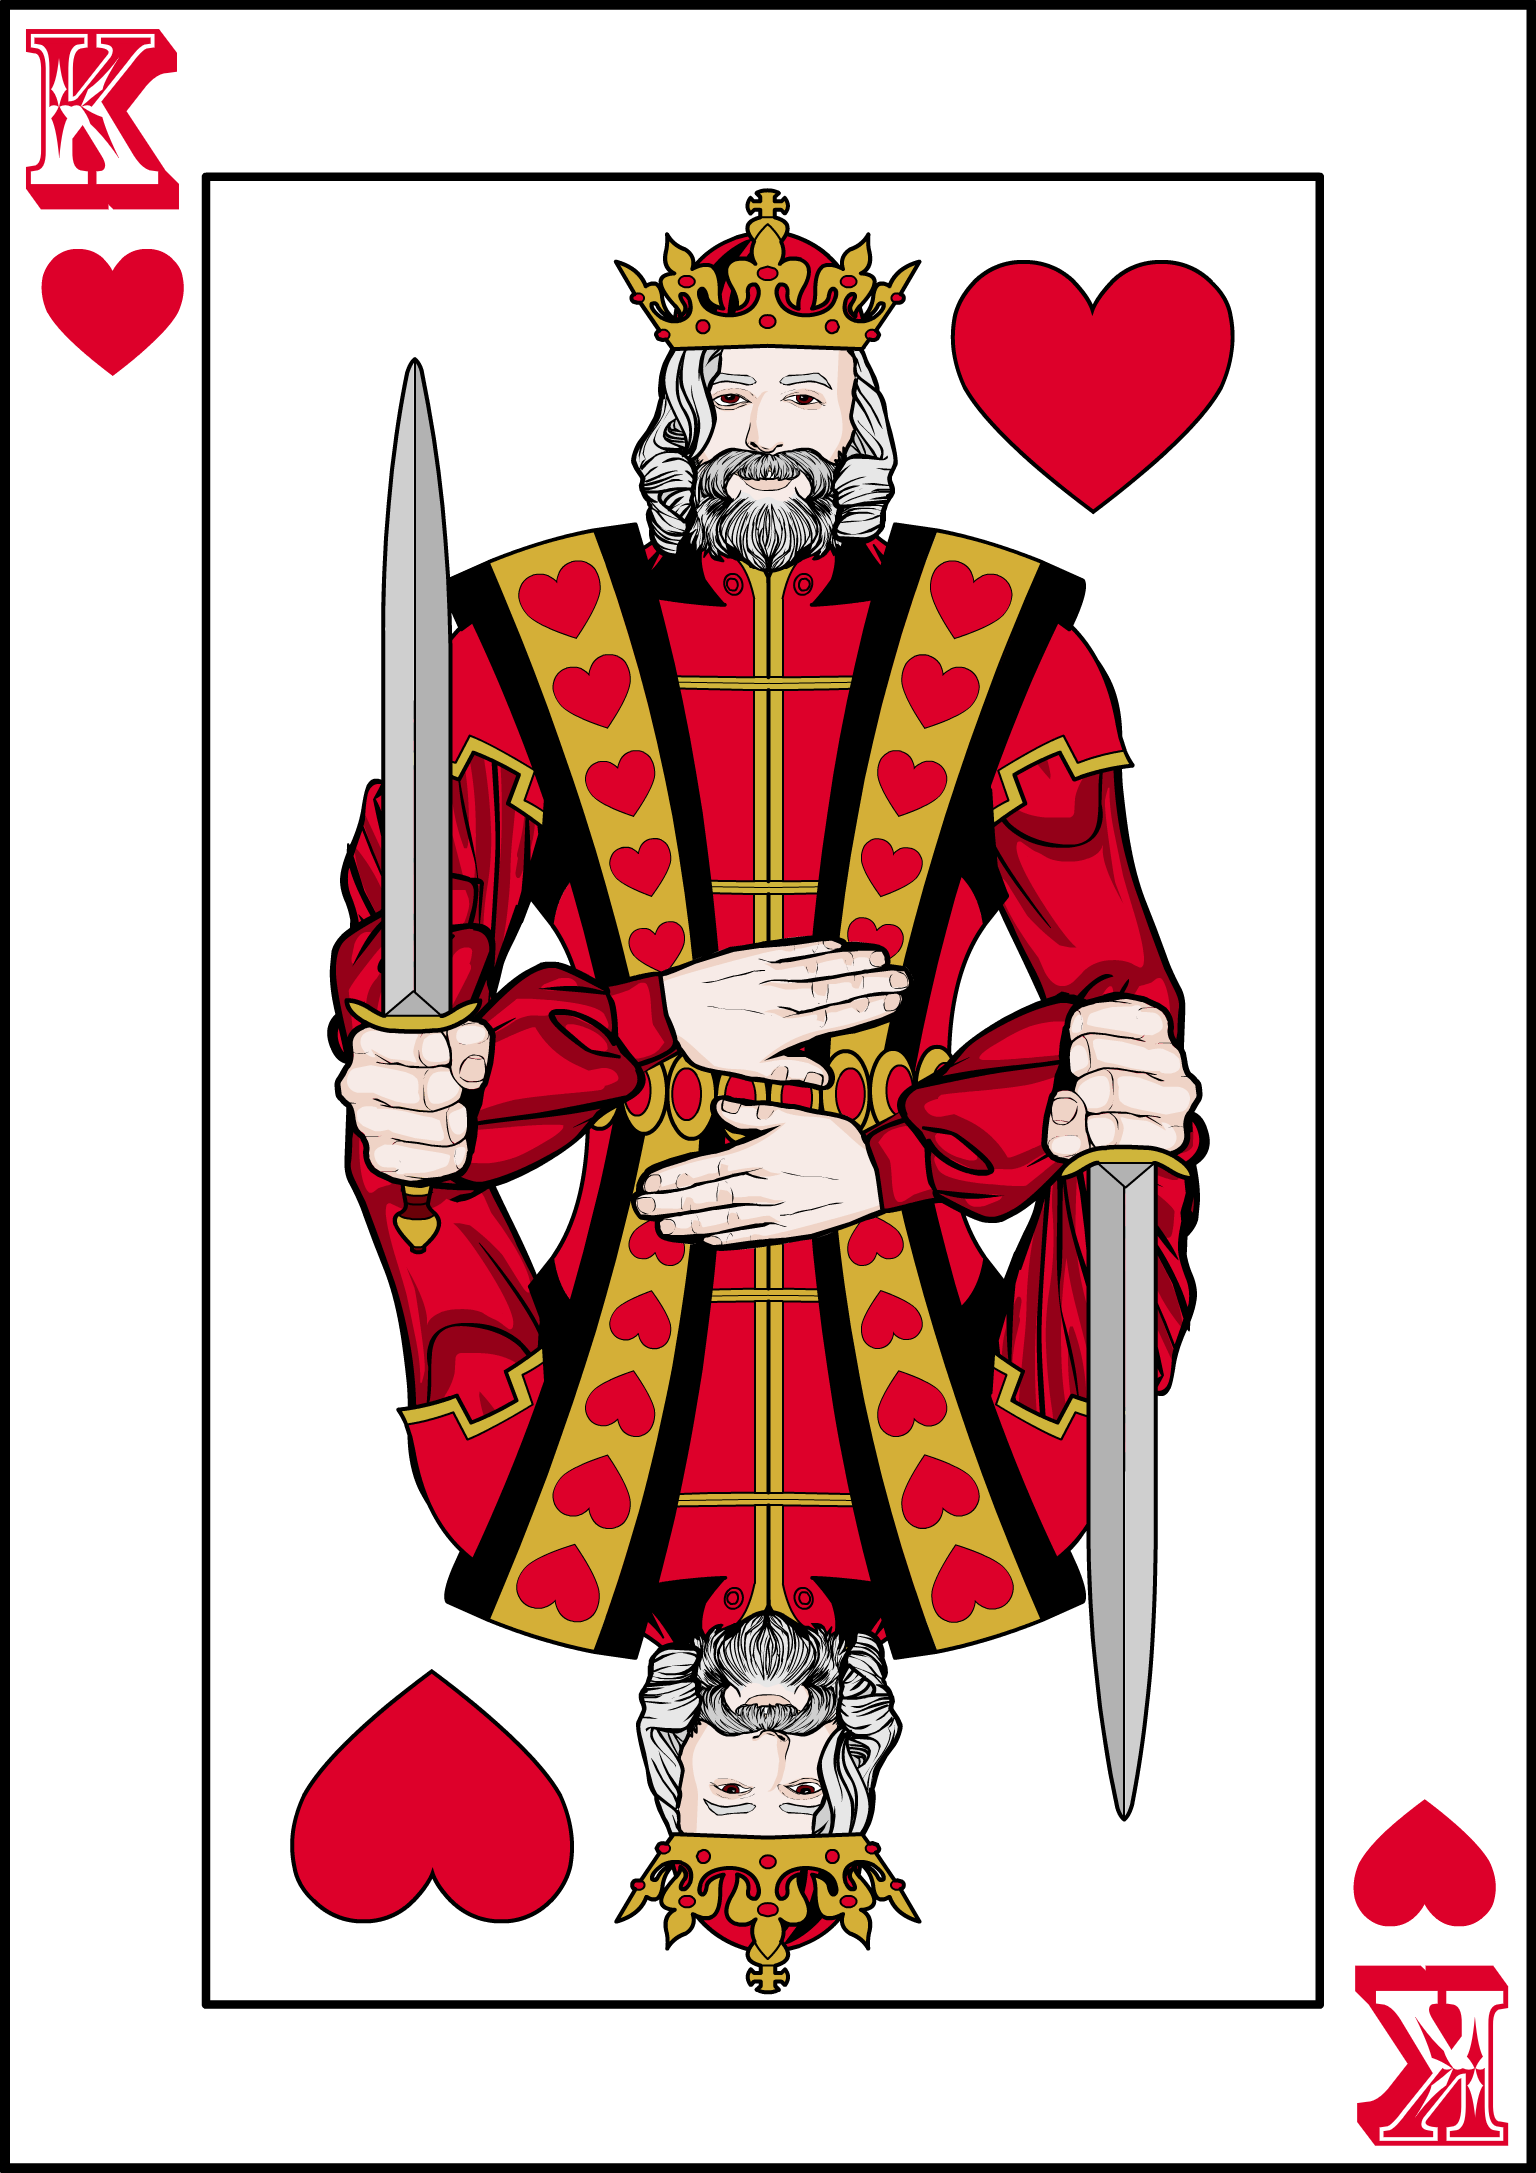 Brons-King of Hearts